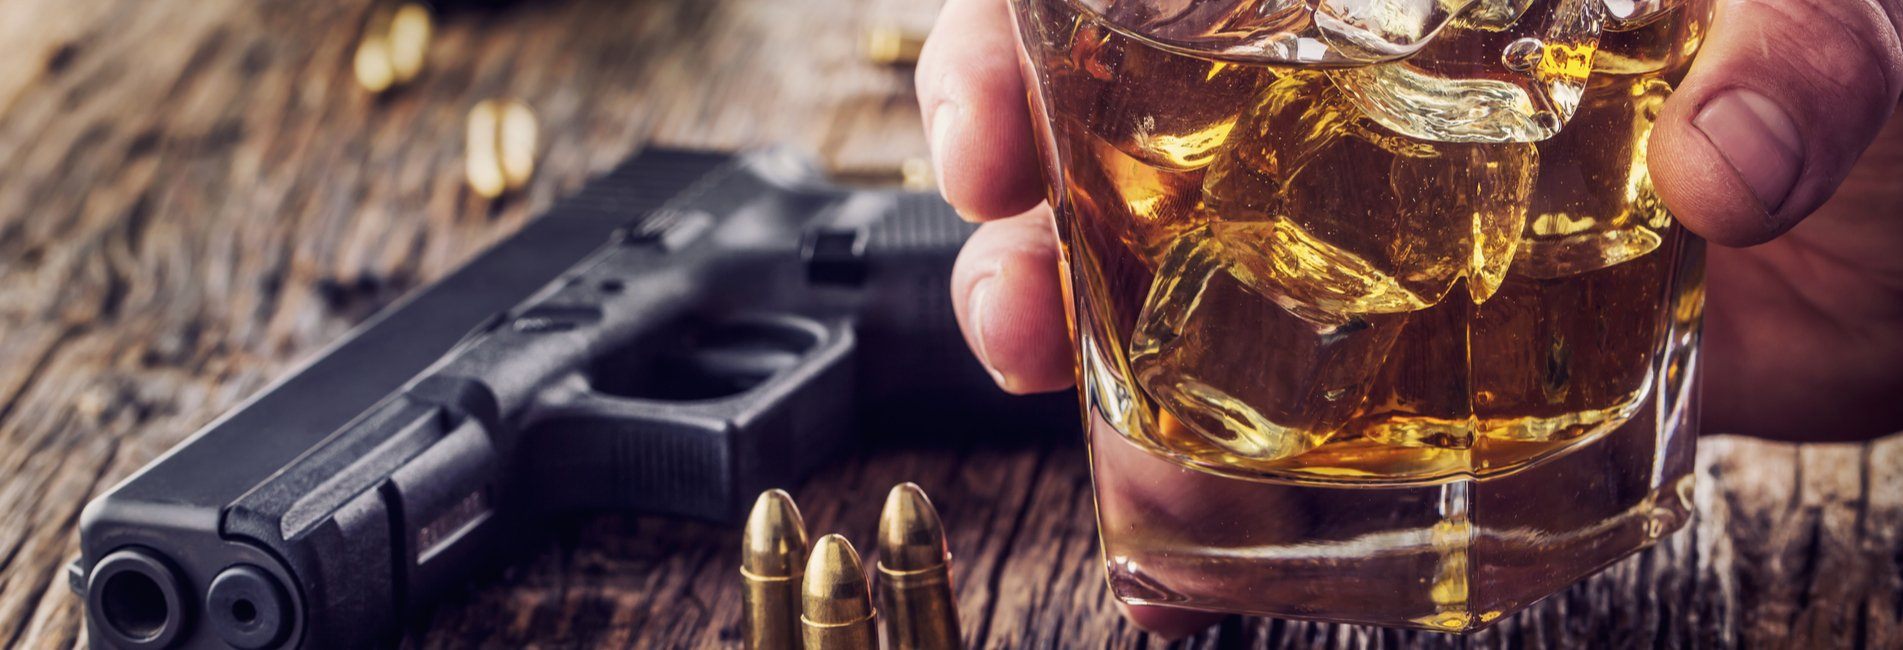 Alcohol-Related Crime Resurgence – Alcohol and crime are related. If your alcohol abuse is causing you to commit crimes, it's time to find a treatment center to get help.